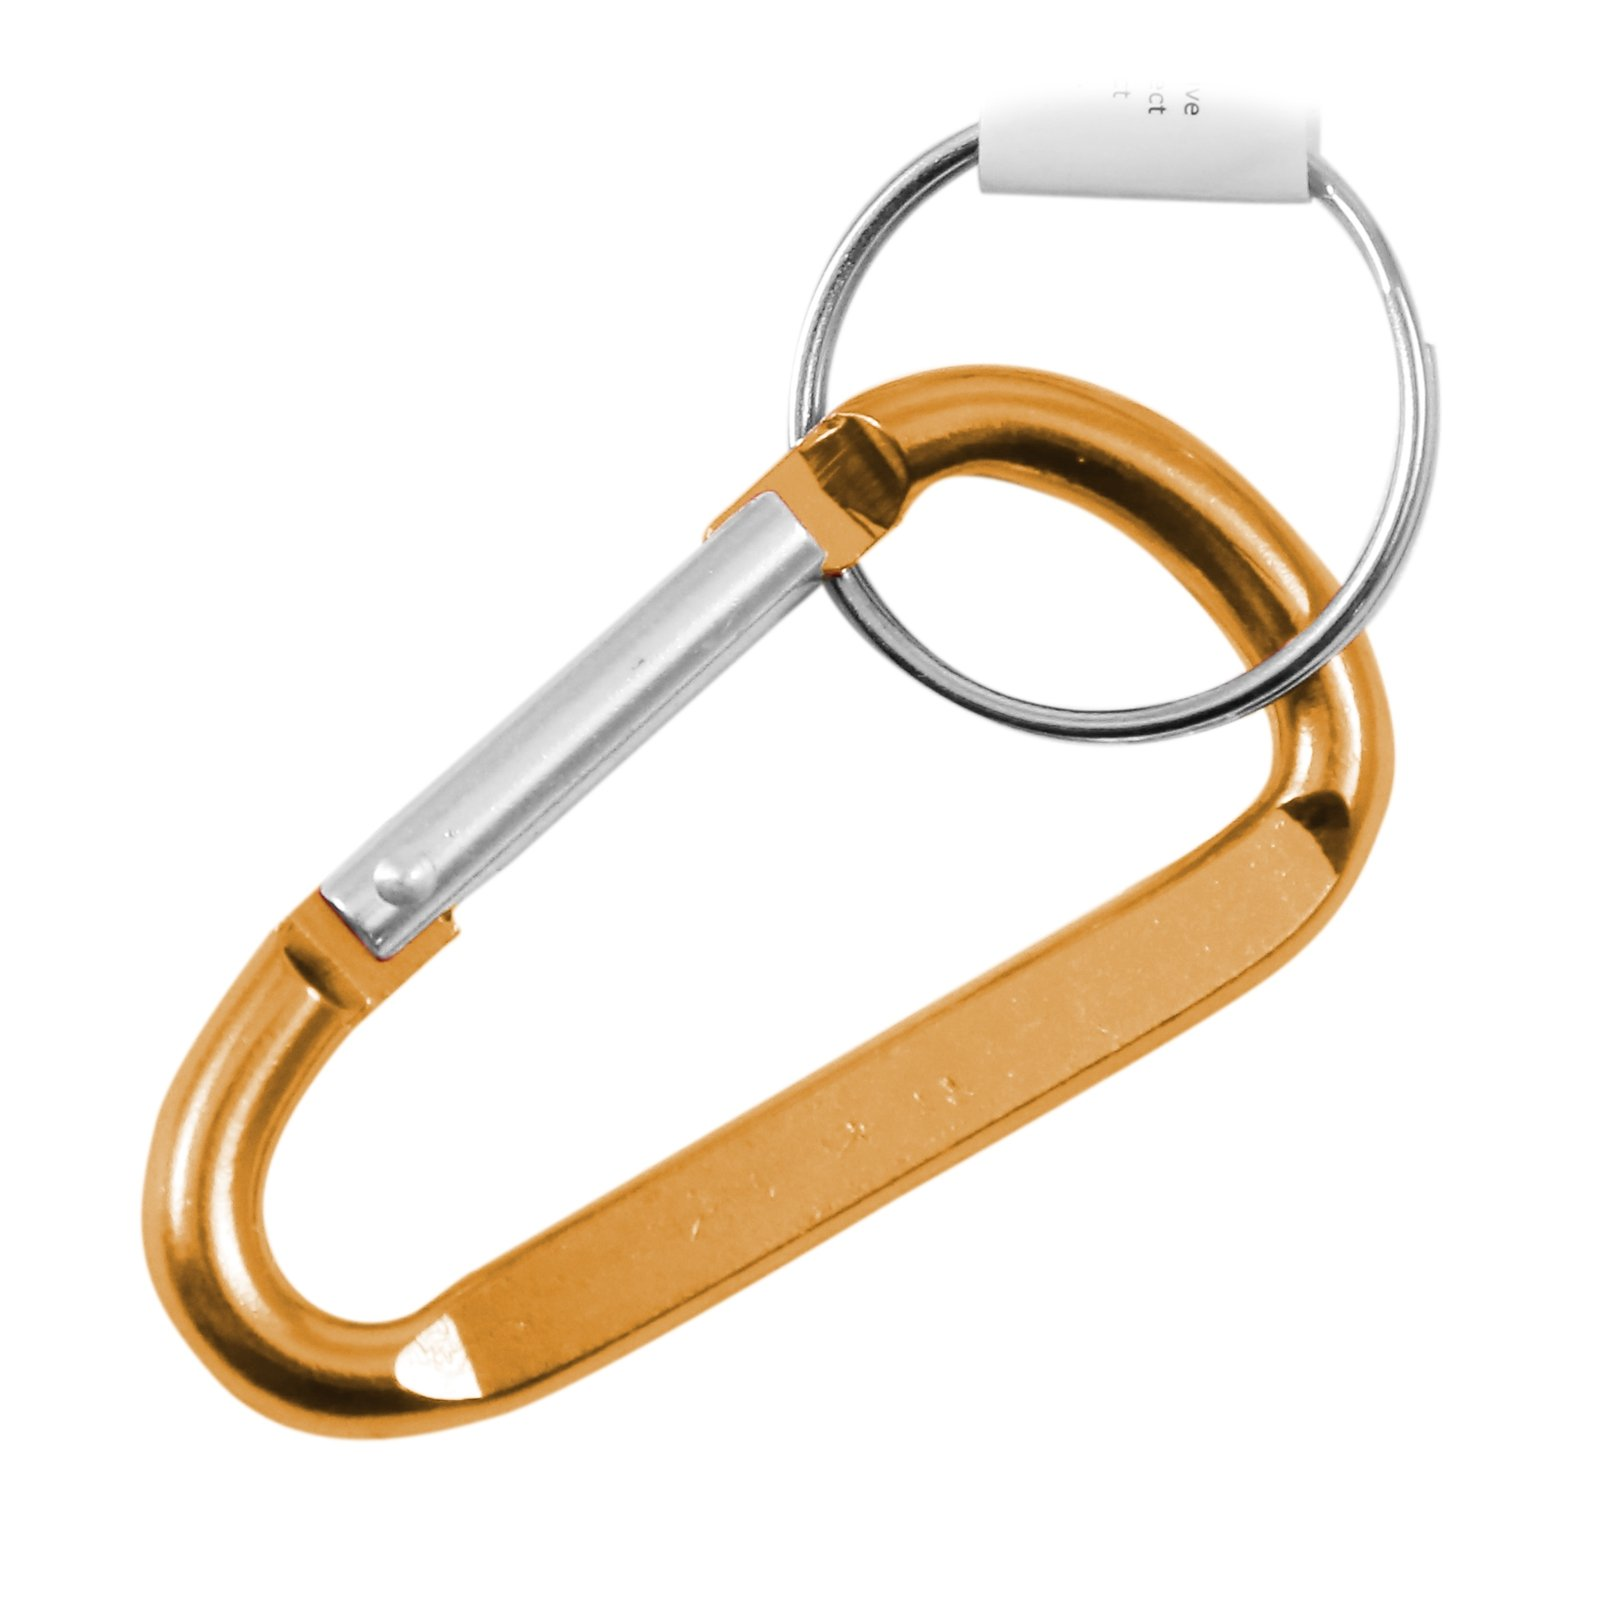 5mm 2 Inch Extra Small Carabiner Key Chain - Orange